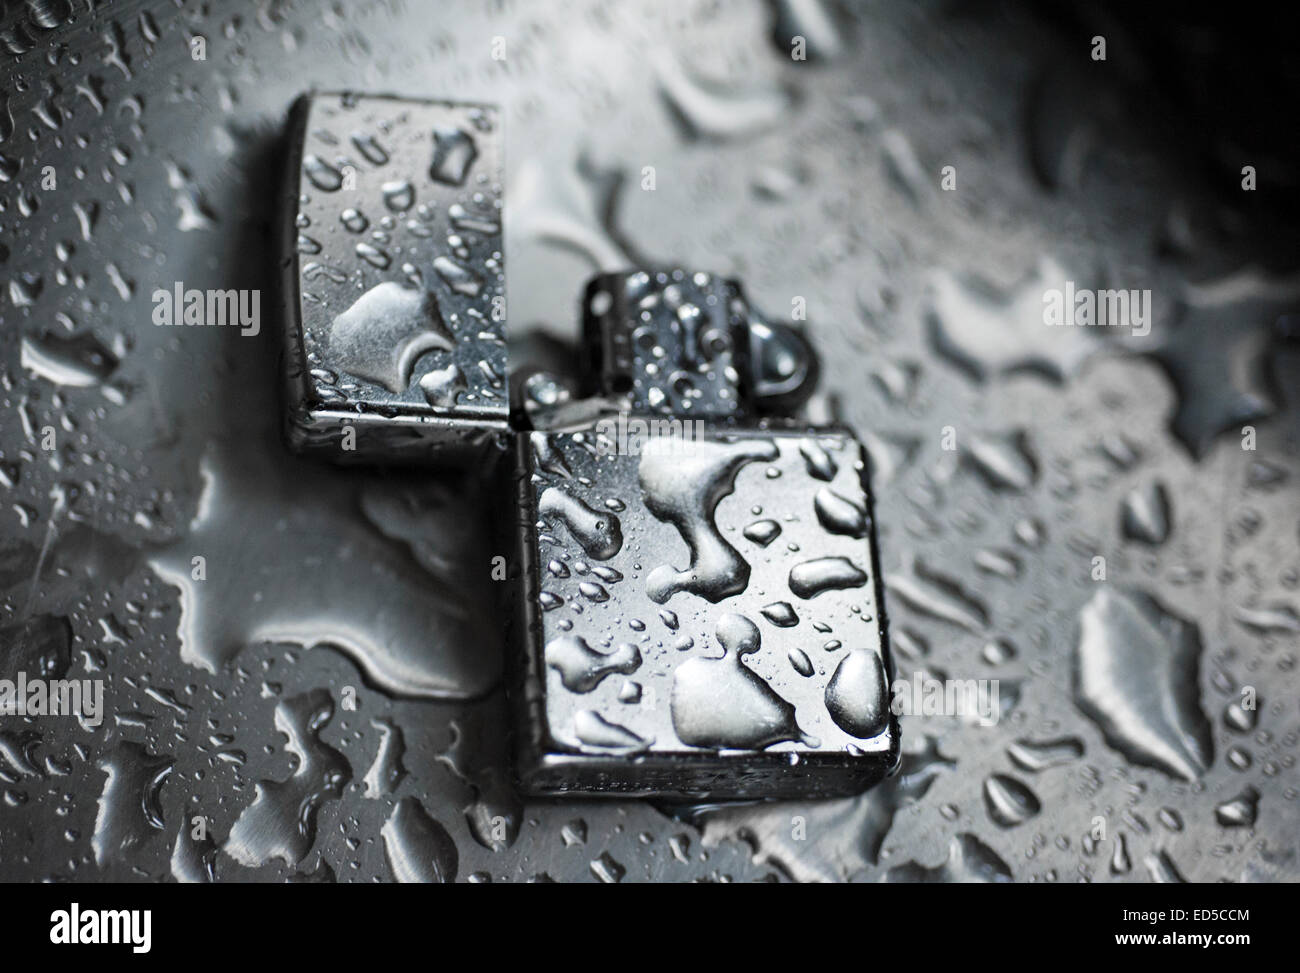 Zippo Lighter in the Rain, Still Life with lighter and water droplets - Stock Image